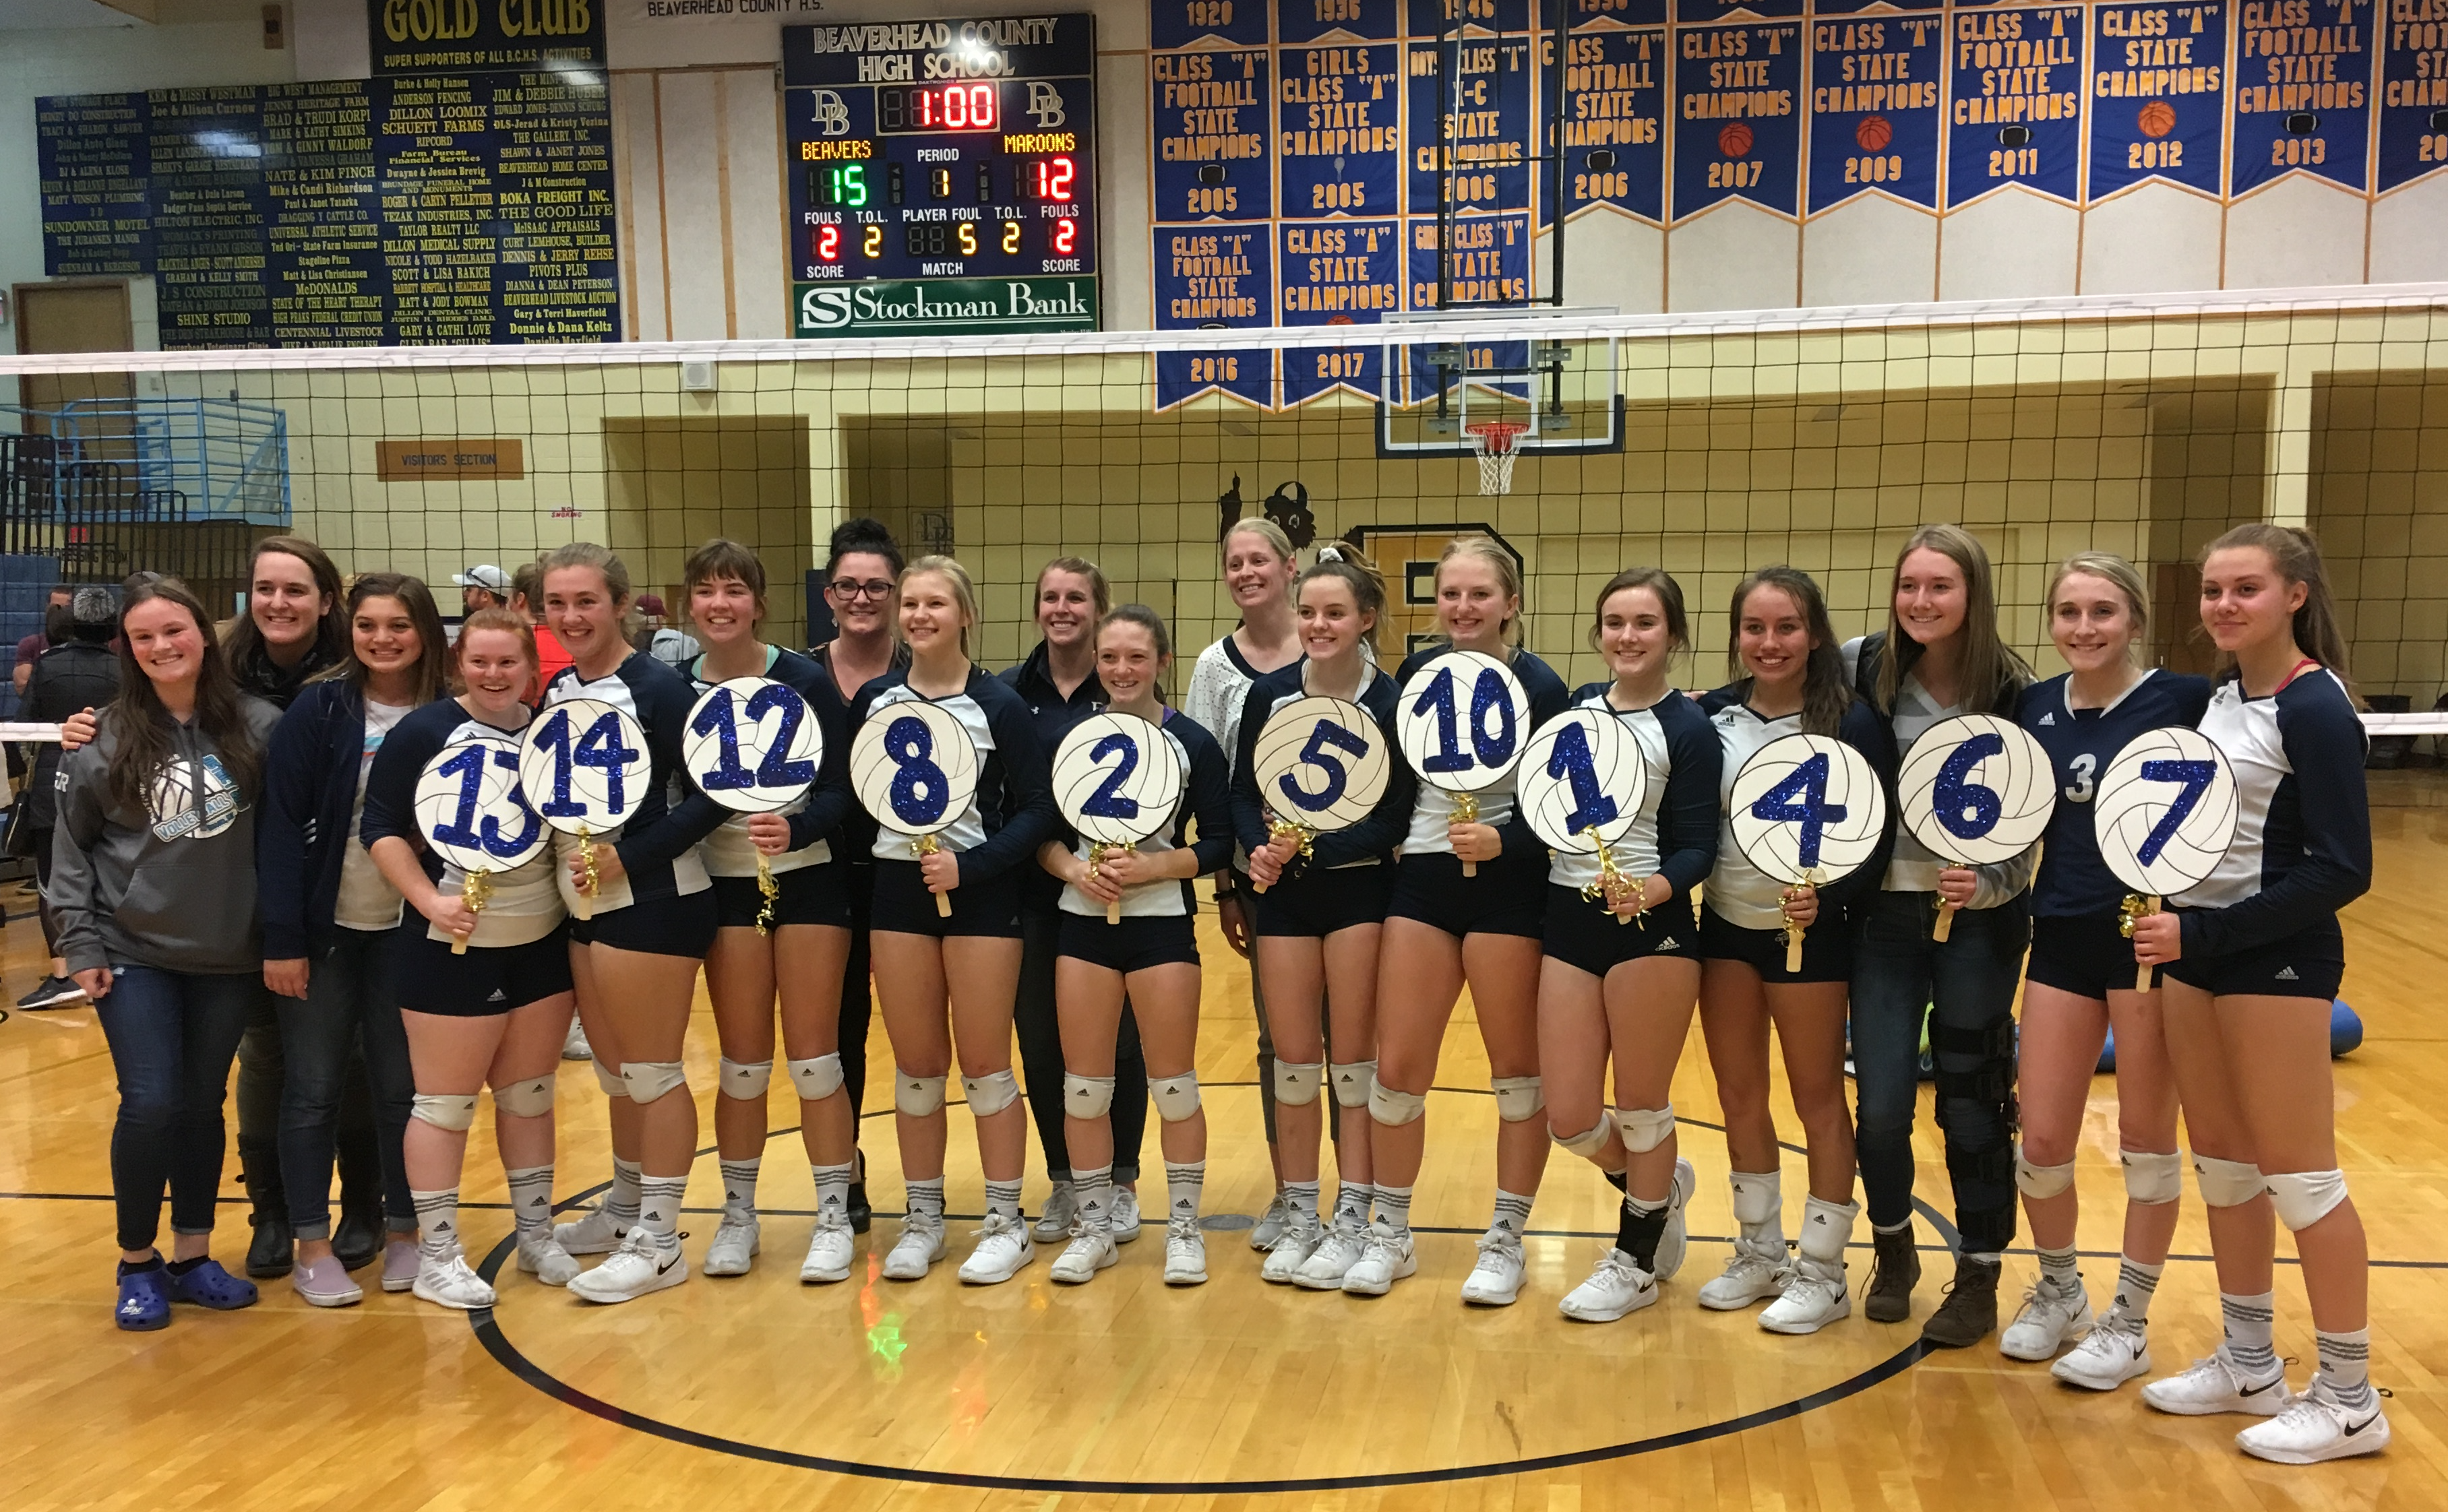 A photo of the Varsity volleyball team celebrating their third place finish at Districts in October 2019